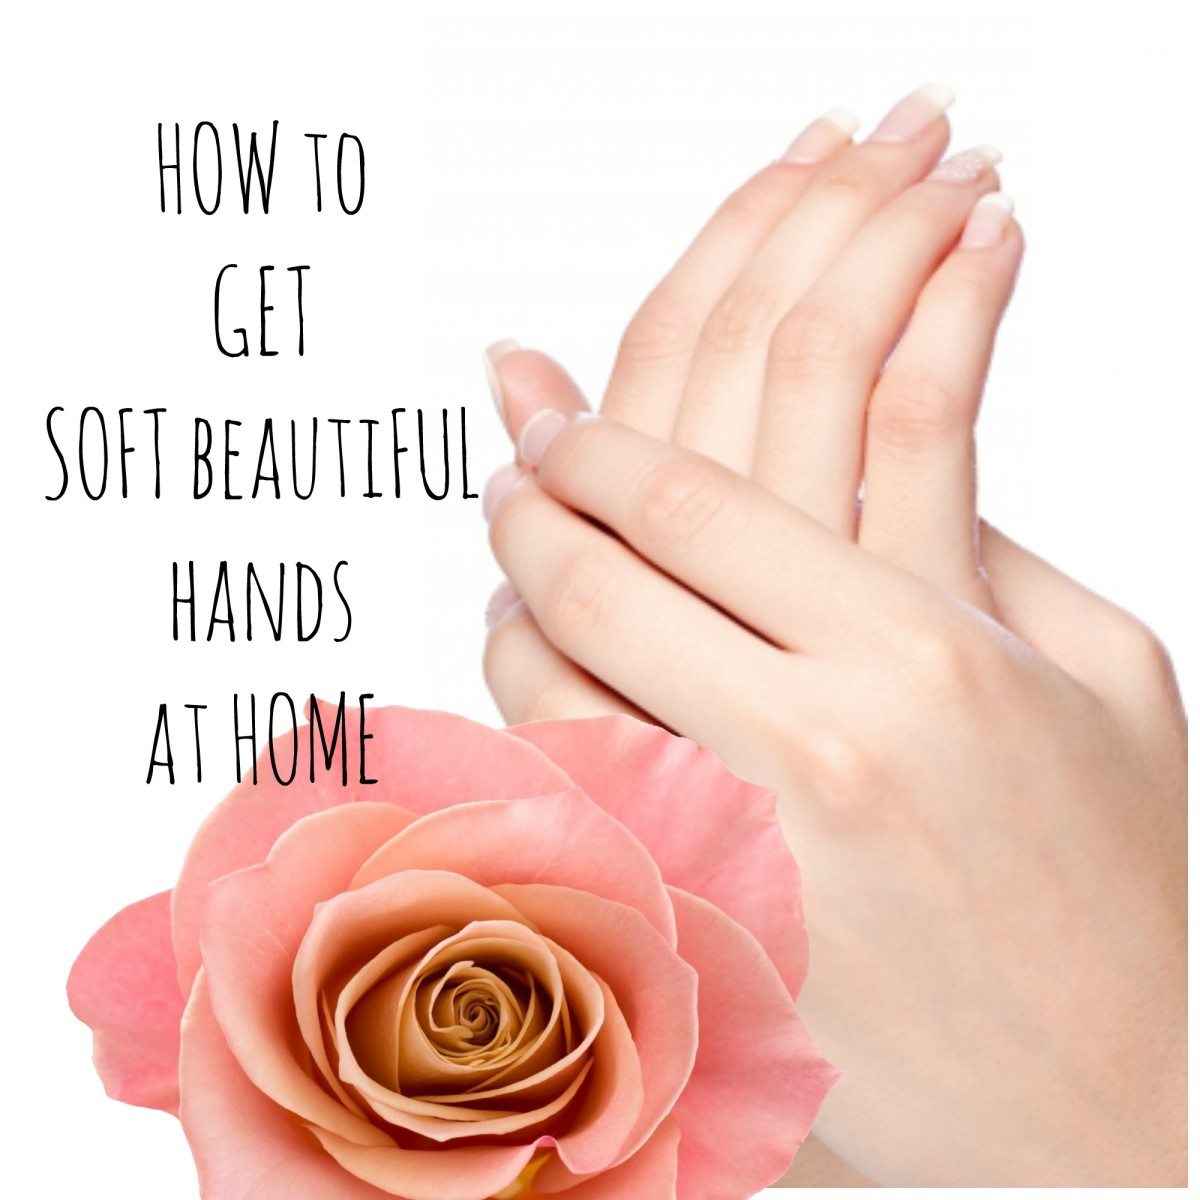 Get soft, youthful and beautiful hands that everyone wants to touch, at home with simple home remedies. Lots of tips, too!